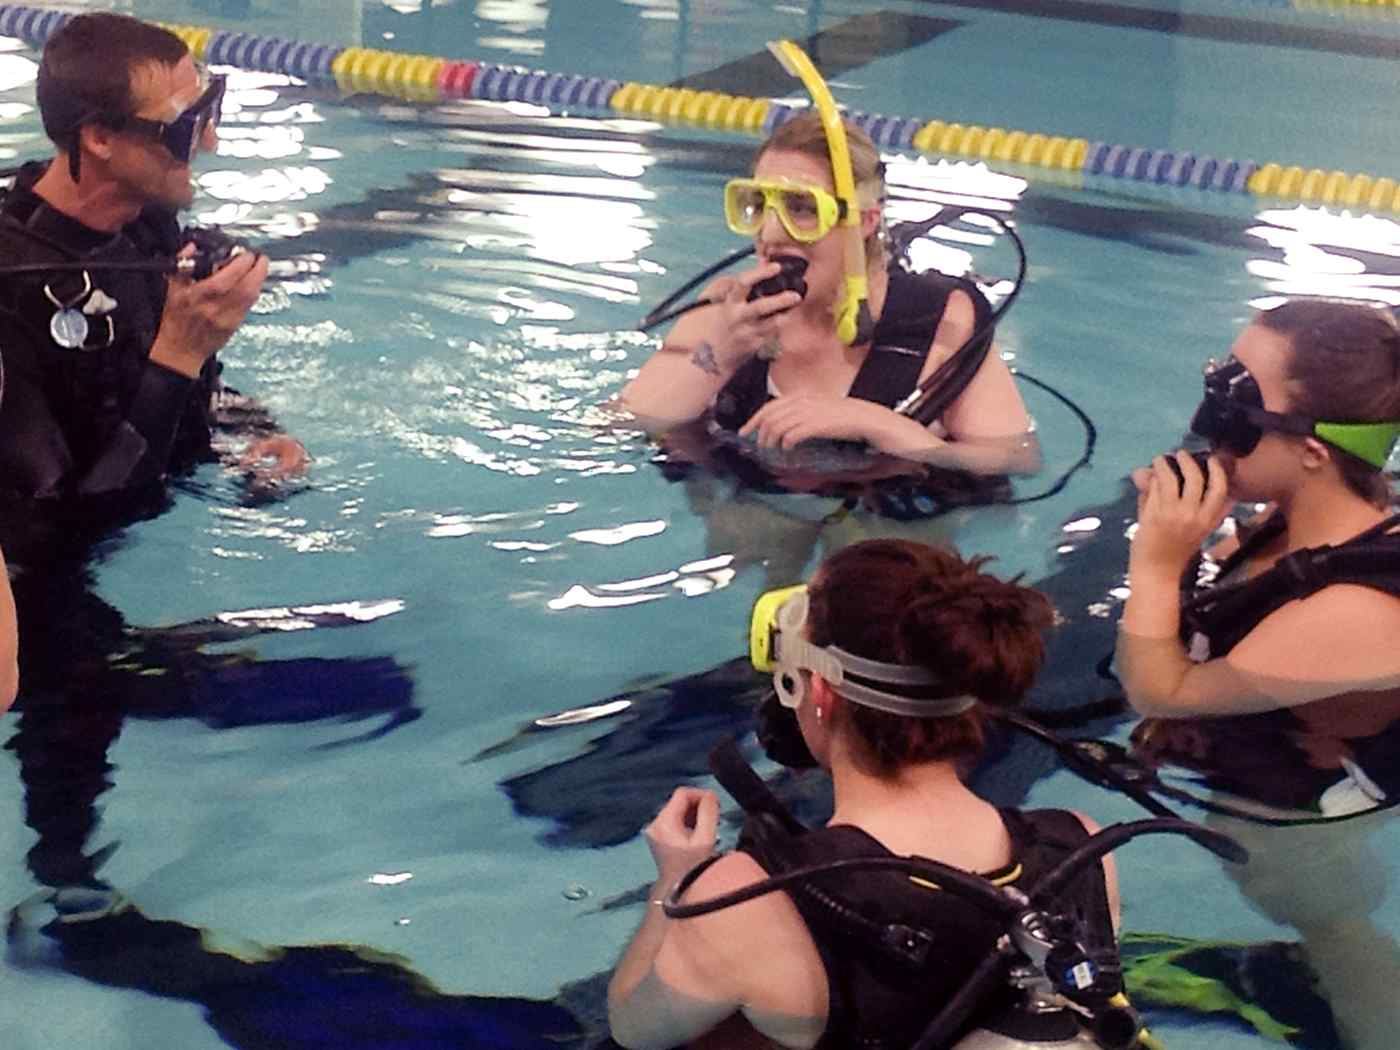 Physical Education students in scuba diving class.